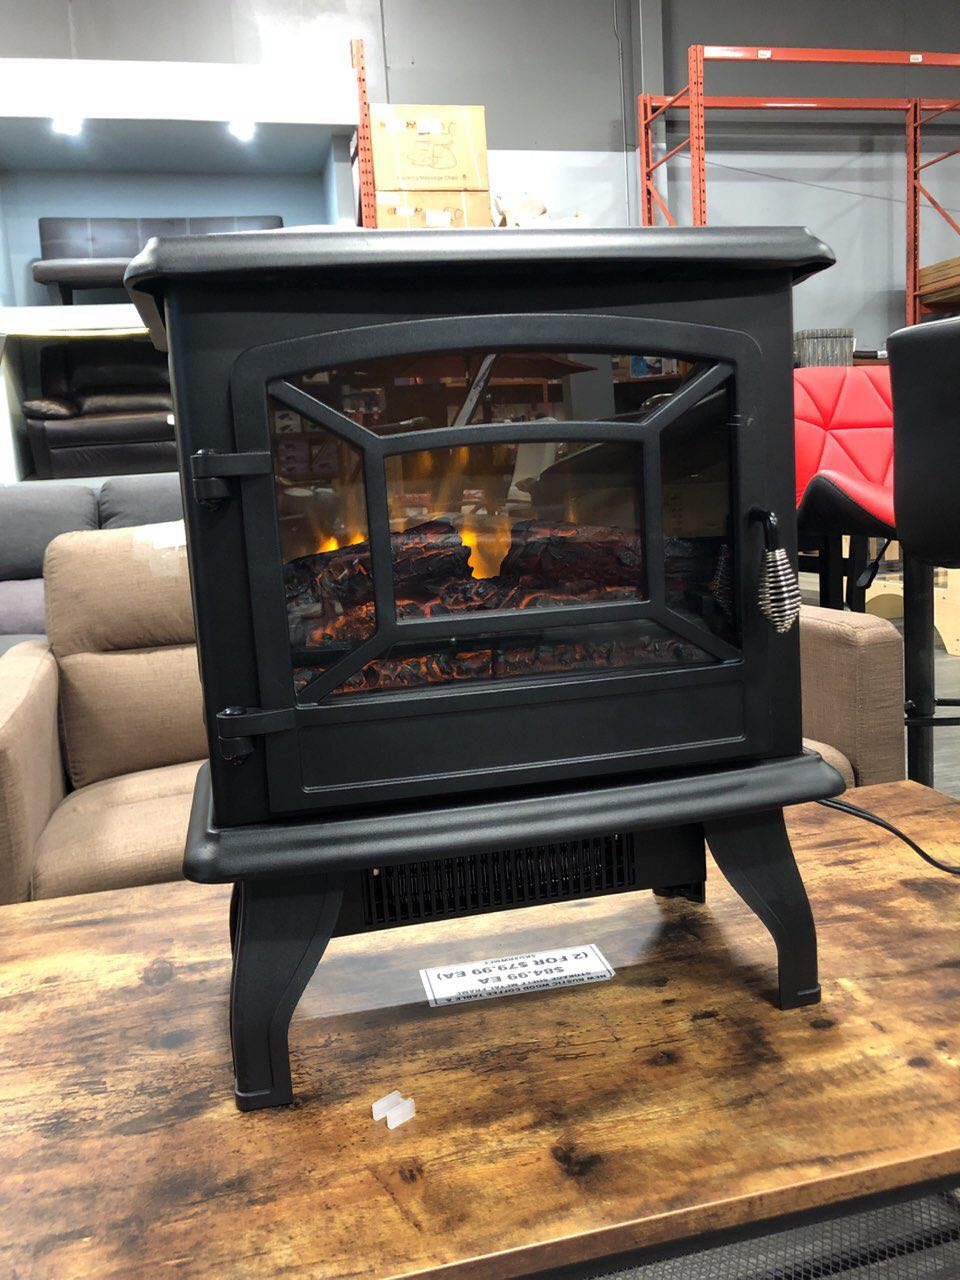 New Electric Fireplace Heater Stove Flame 1500 Watt Tyfp51